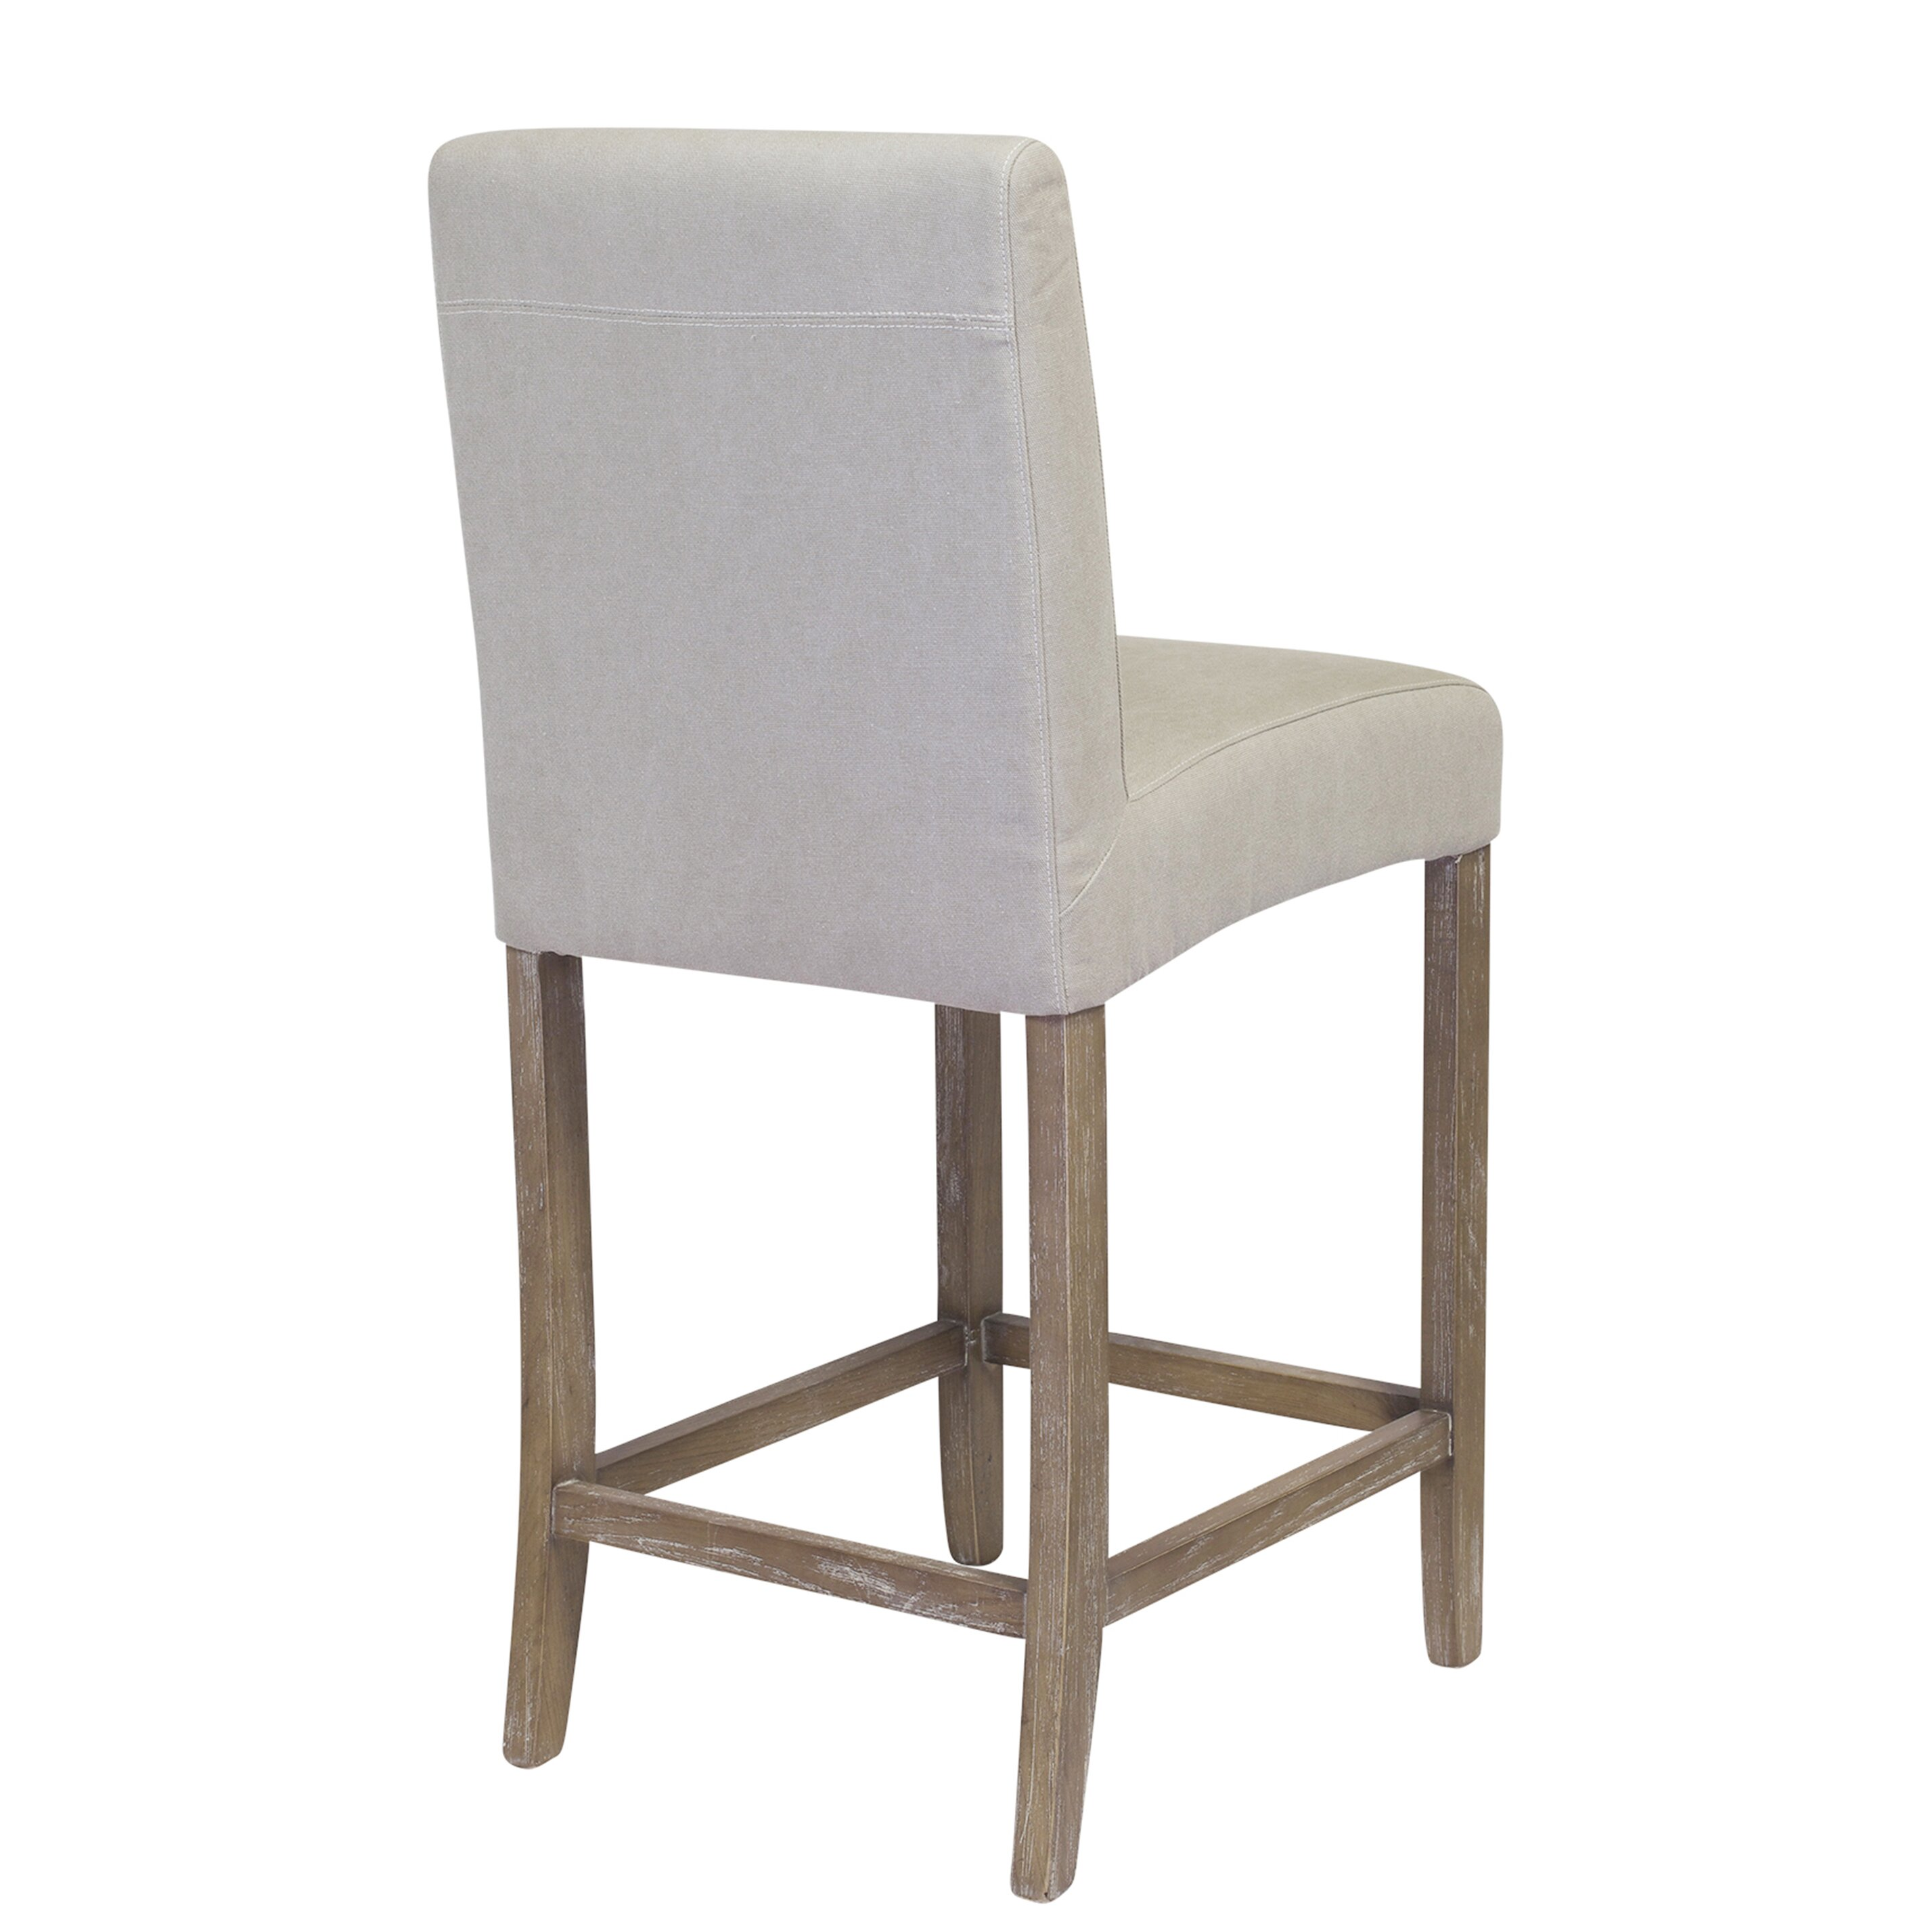 Design Tree Home James 2525quot Bar Stool with Cushion Wayfair : Design Tree Home James 2525 Bar Stool with Cushion from www.wayfair.com size 2855 x 2855 jpeg 604kB